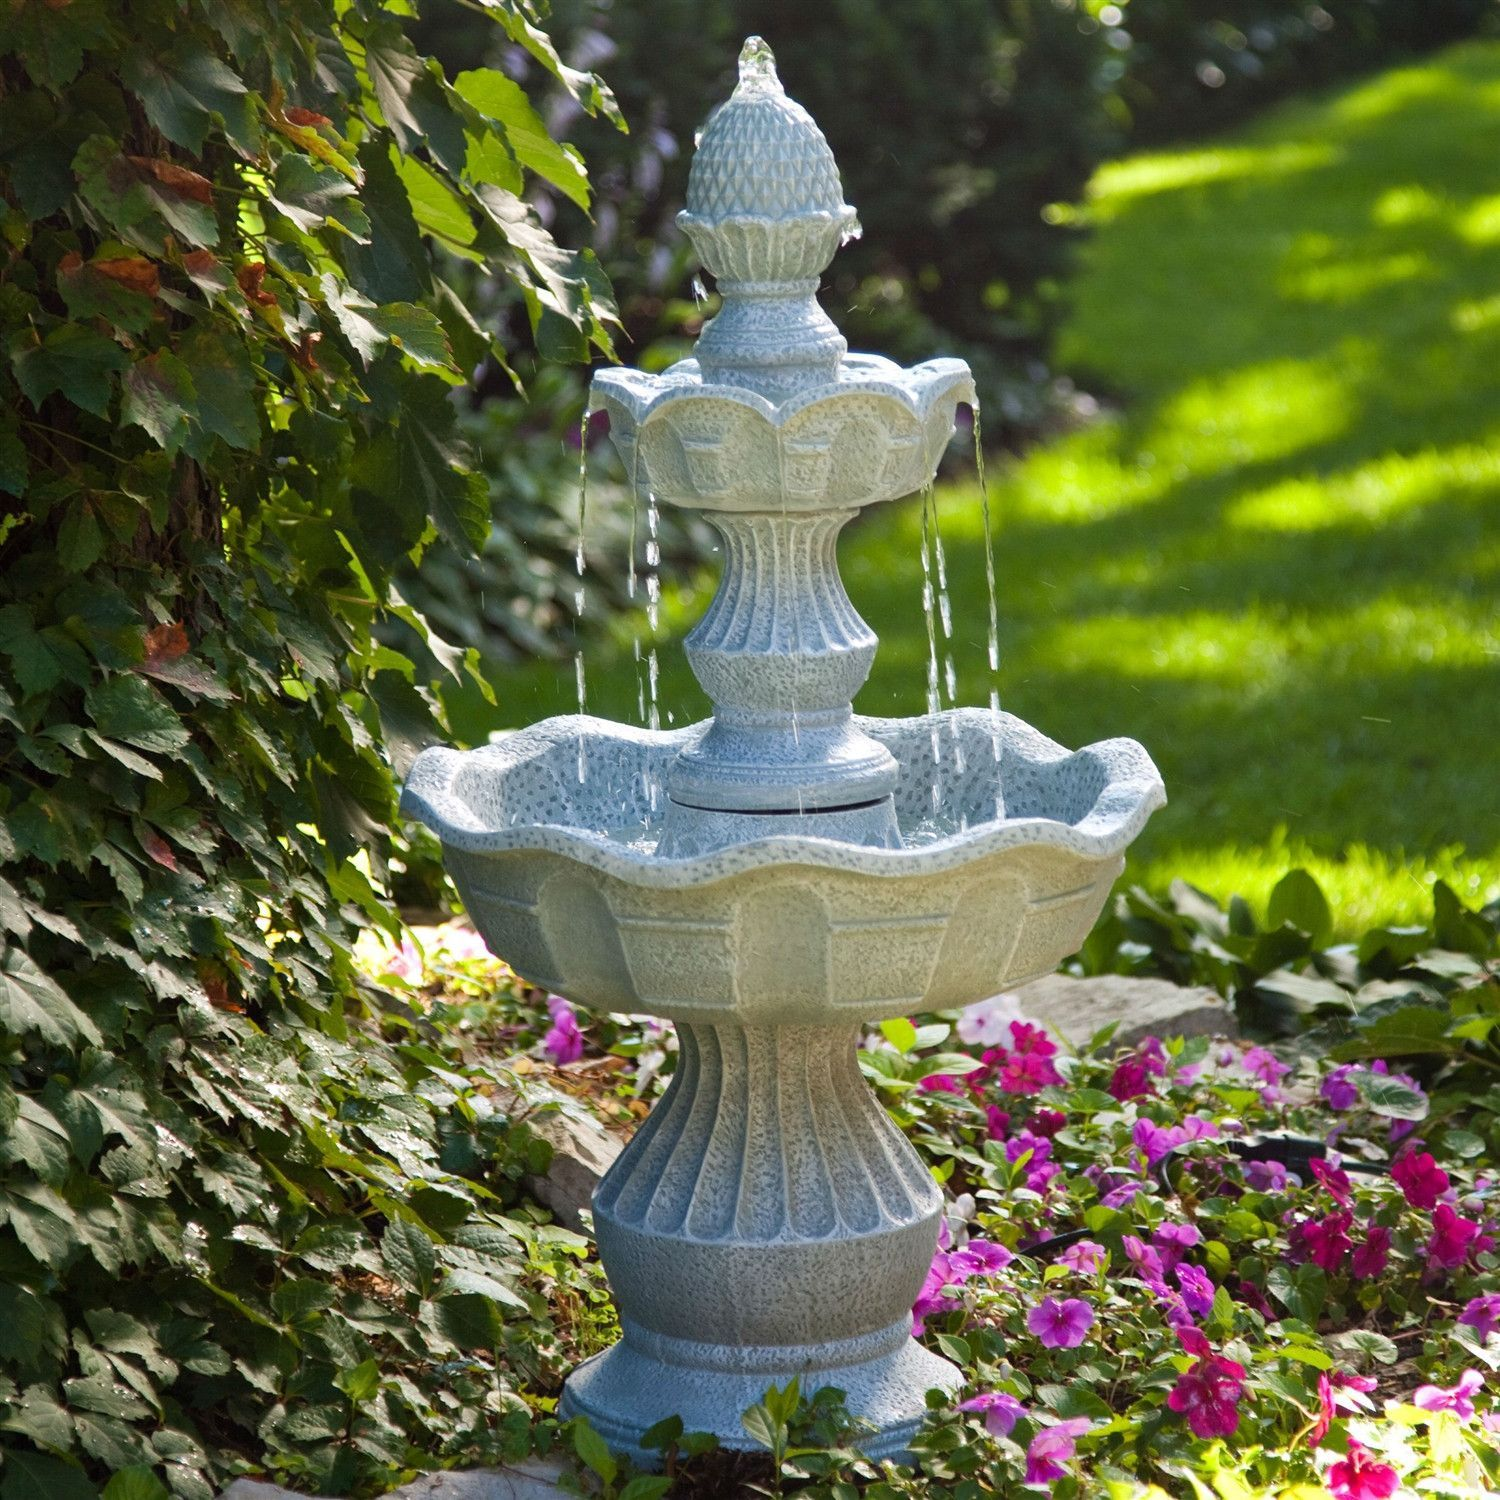 2 Tier Outdoor Fountain With Pineapple Top In Weather Resistant Resin Garden Fountains Garden Water Fountains Tabletop Fountain